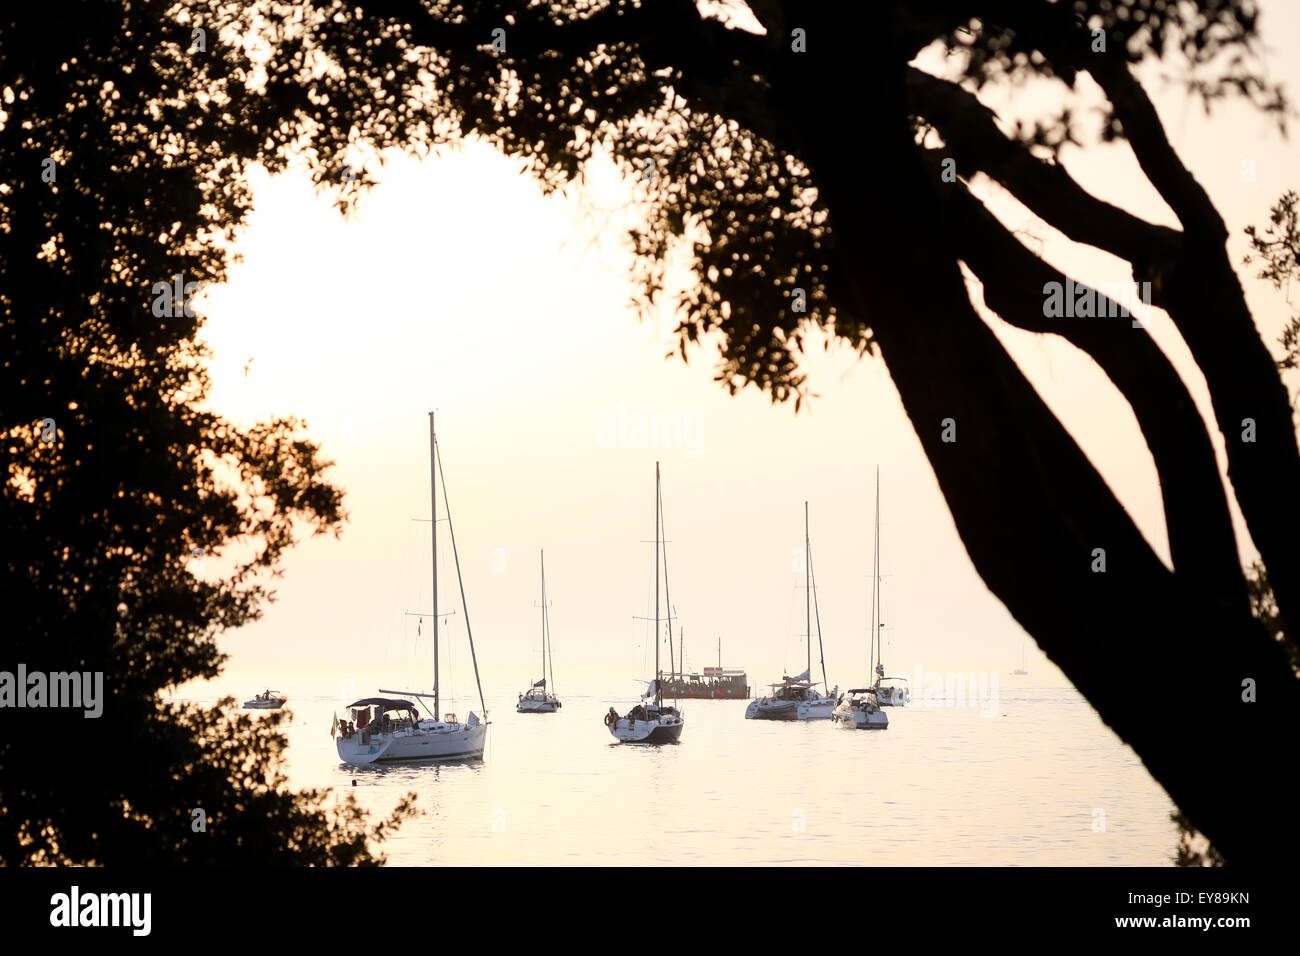 A view of a group of sailboats anchored in the Adriatic sea at sunset in Rovinj, Croatia. Stock Photo